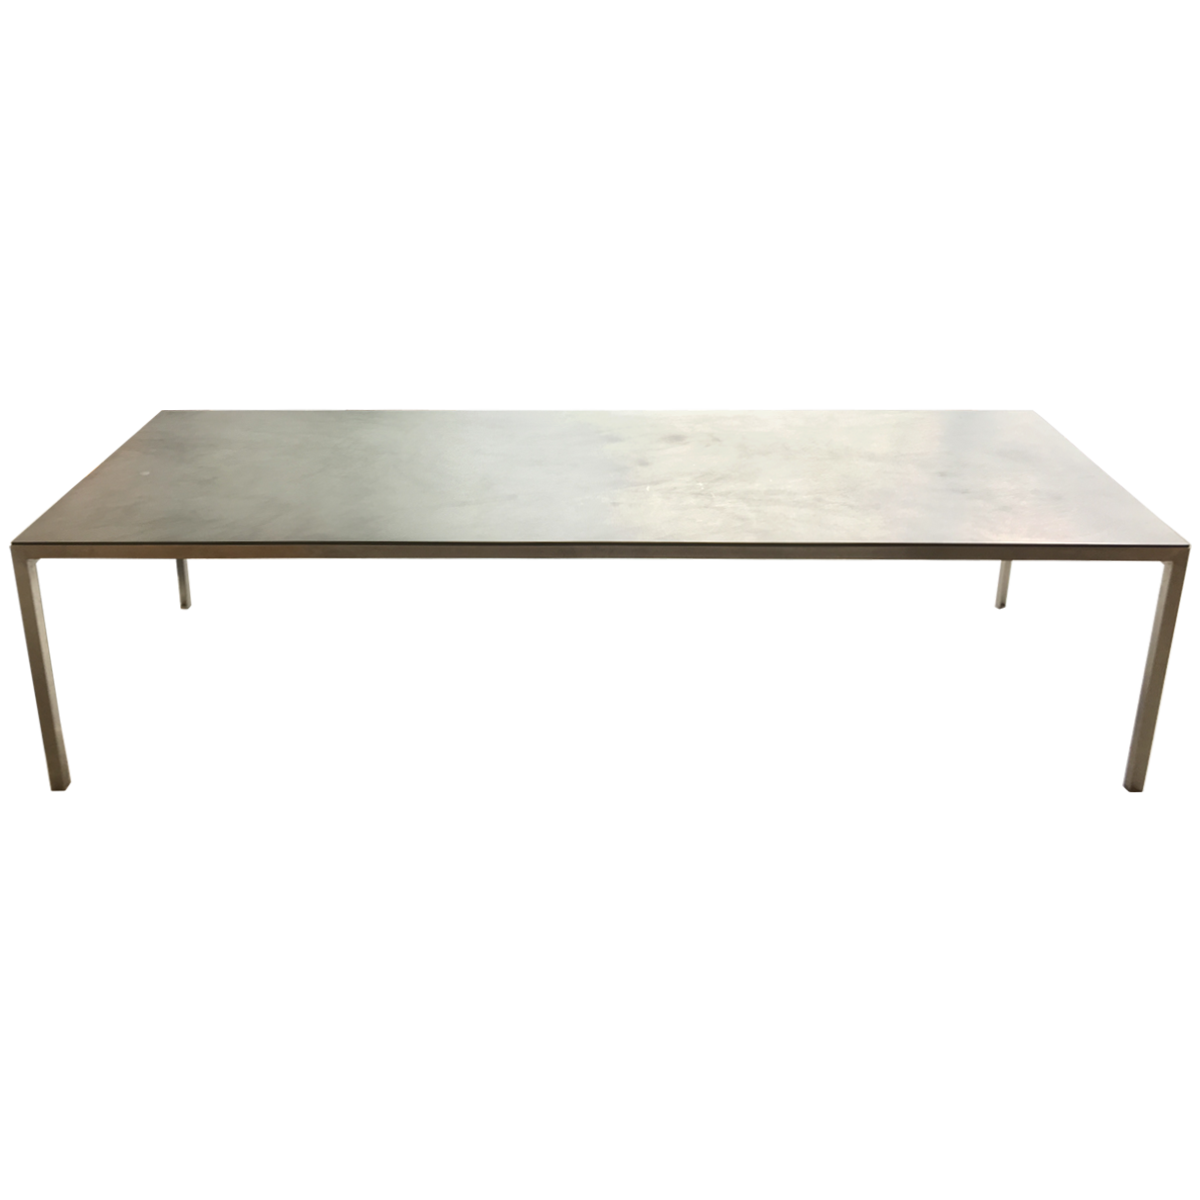 Chai Ming Terania Dining Table Front